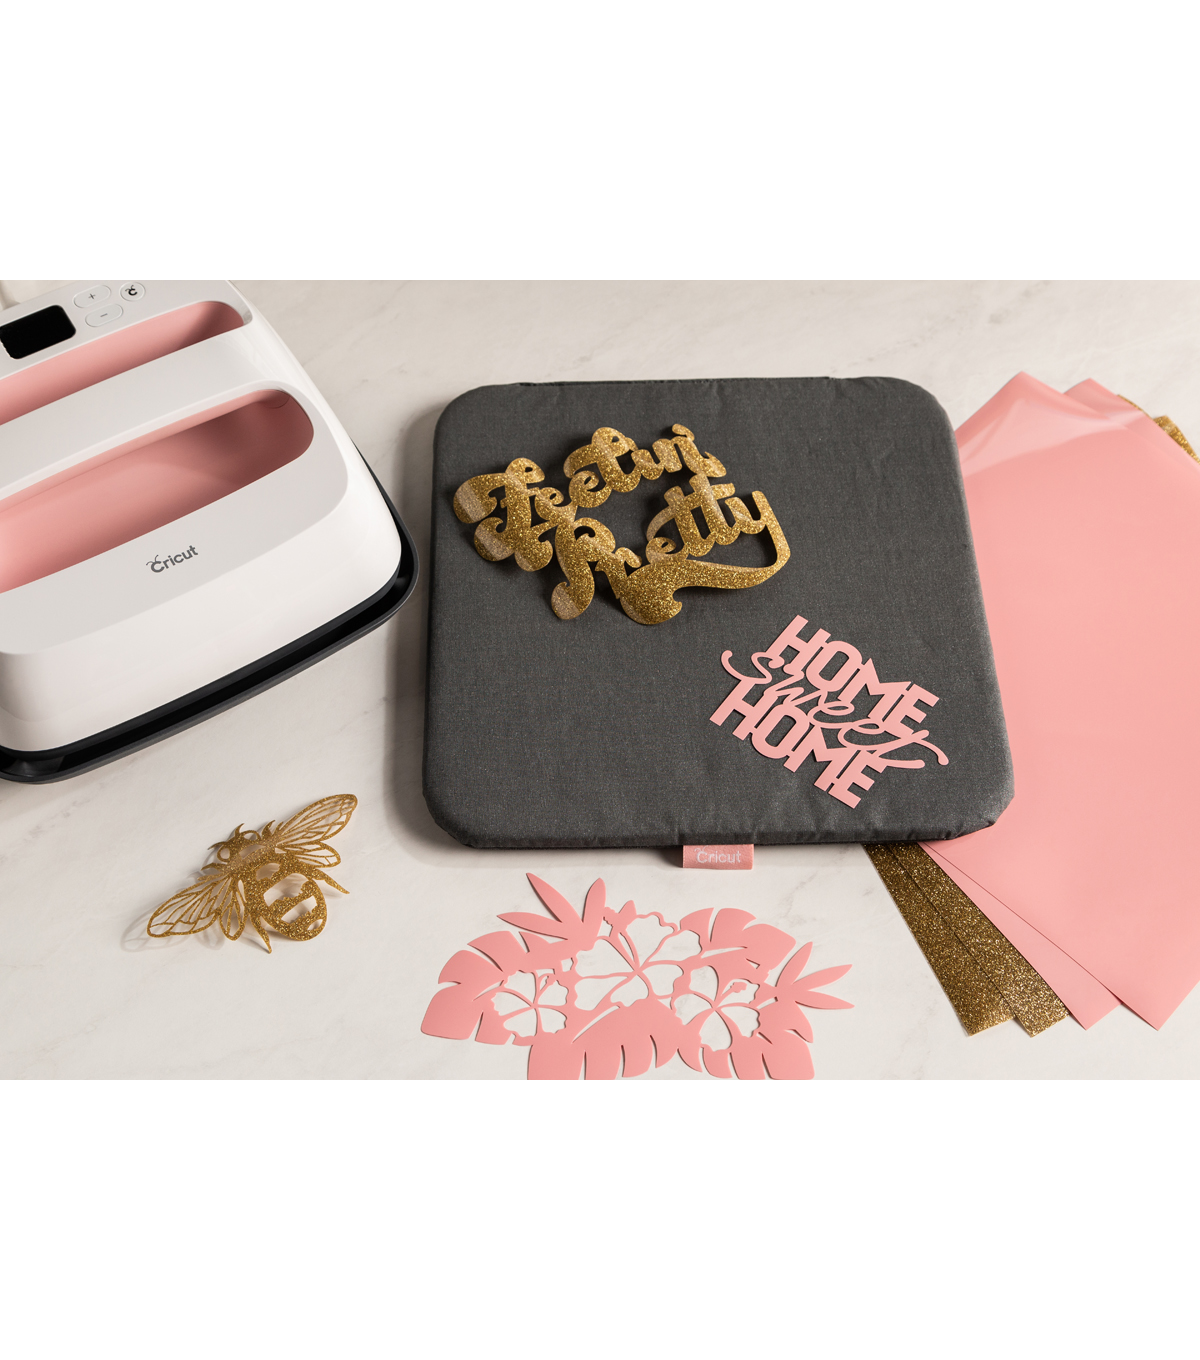 Cricut EasyPress 2 9\u0027\u0027x9\u0027\u0027 Machine Bundle-Rose